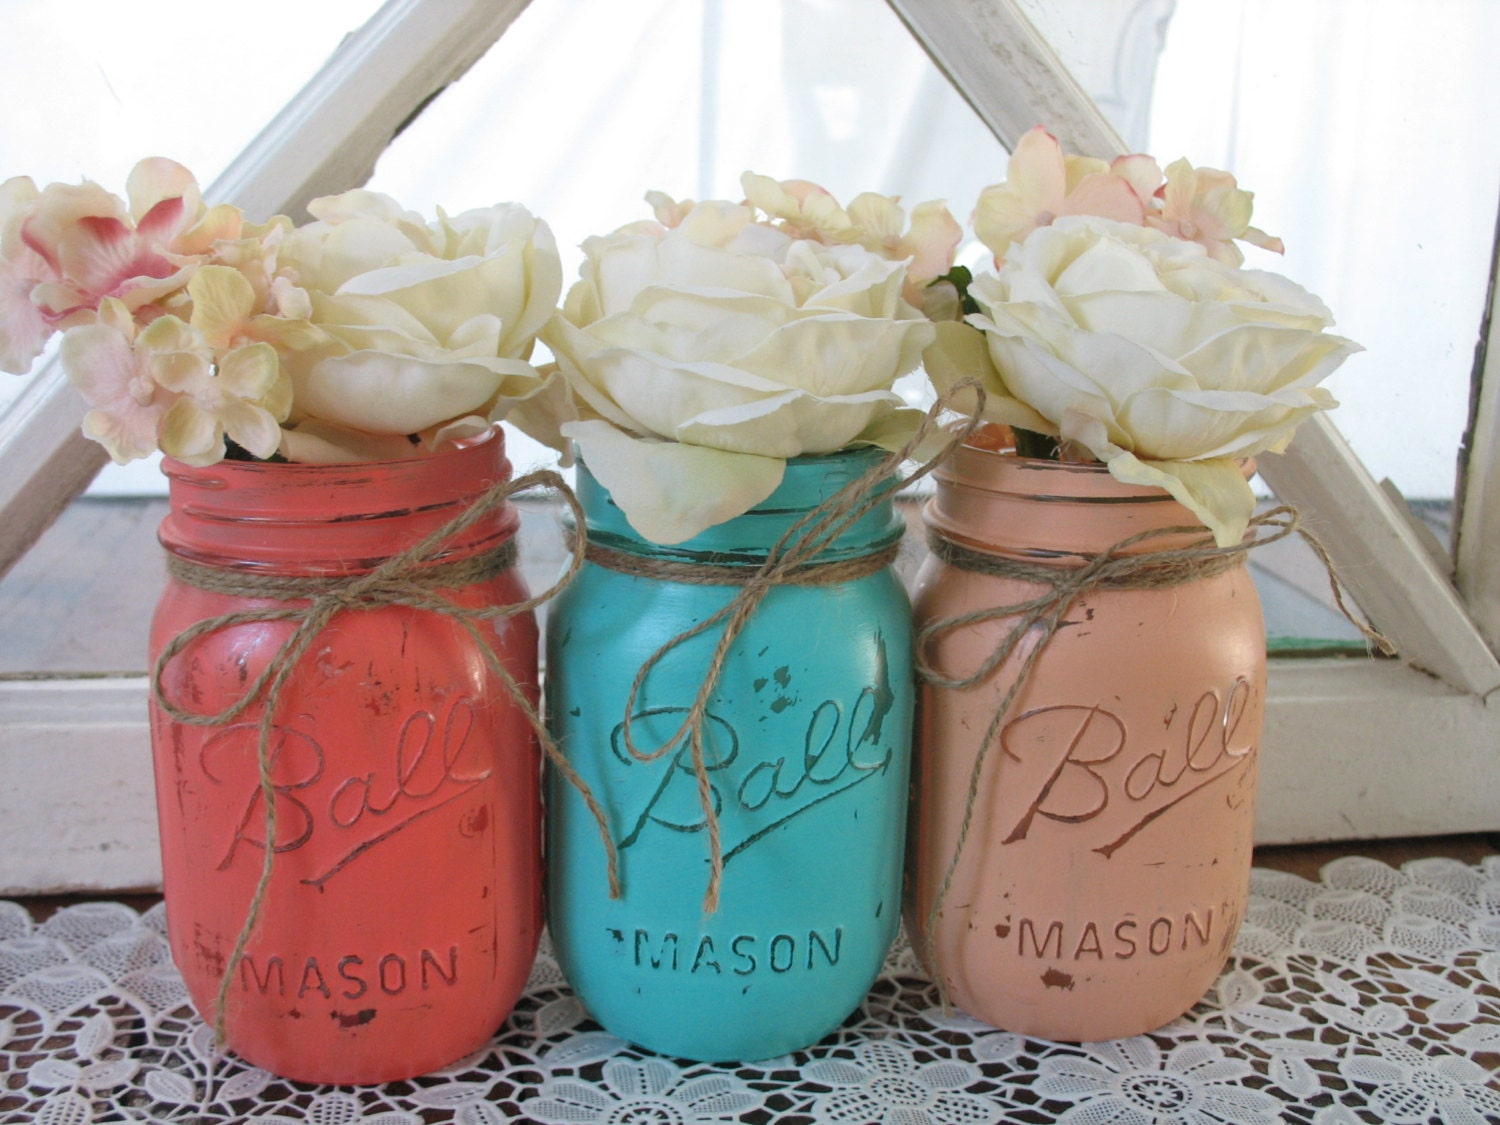 SALE 16 Pint Mason Jars Decorative Mason Jars Teacher